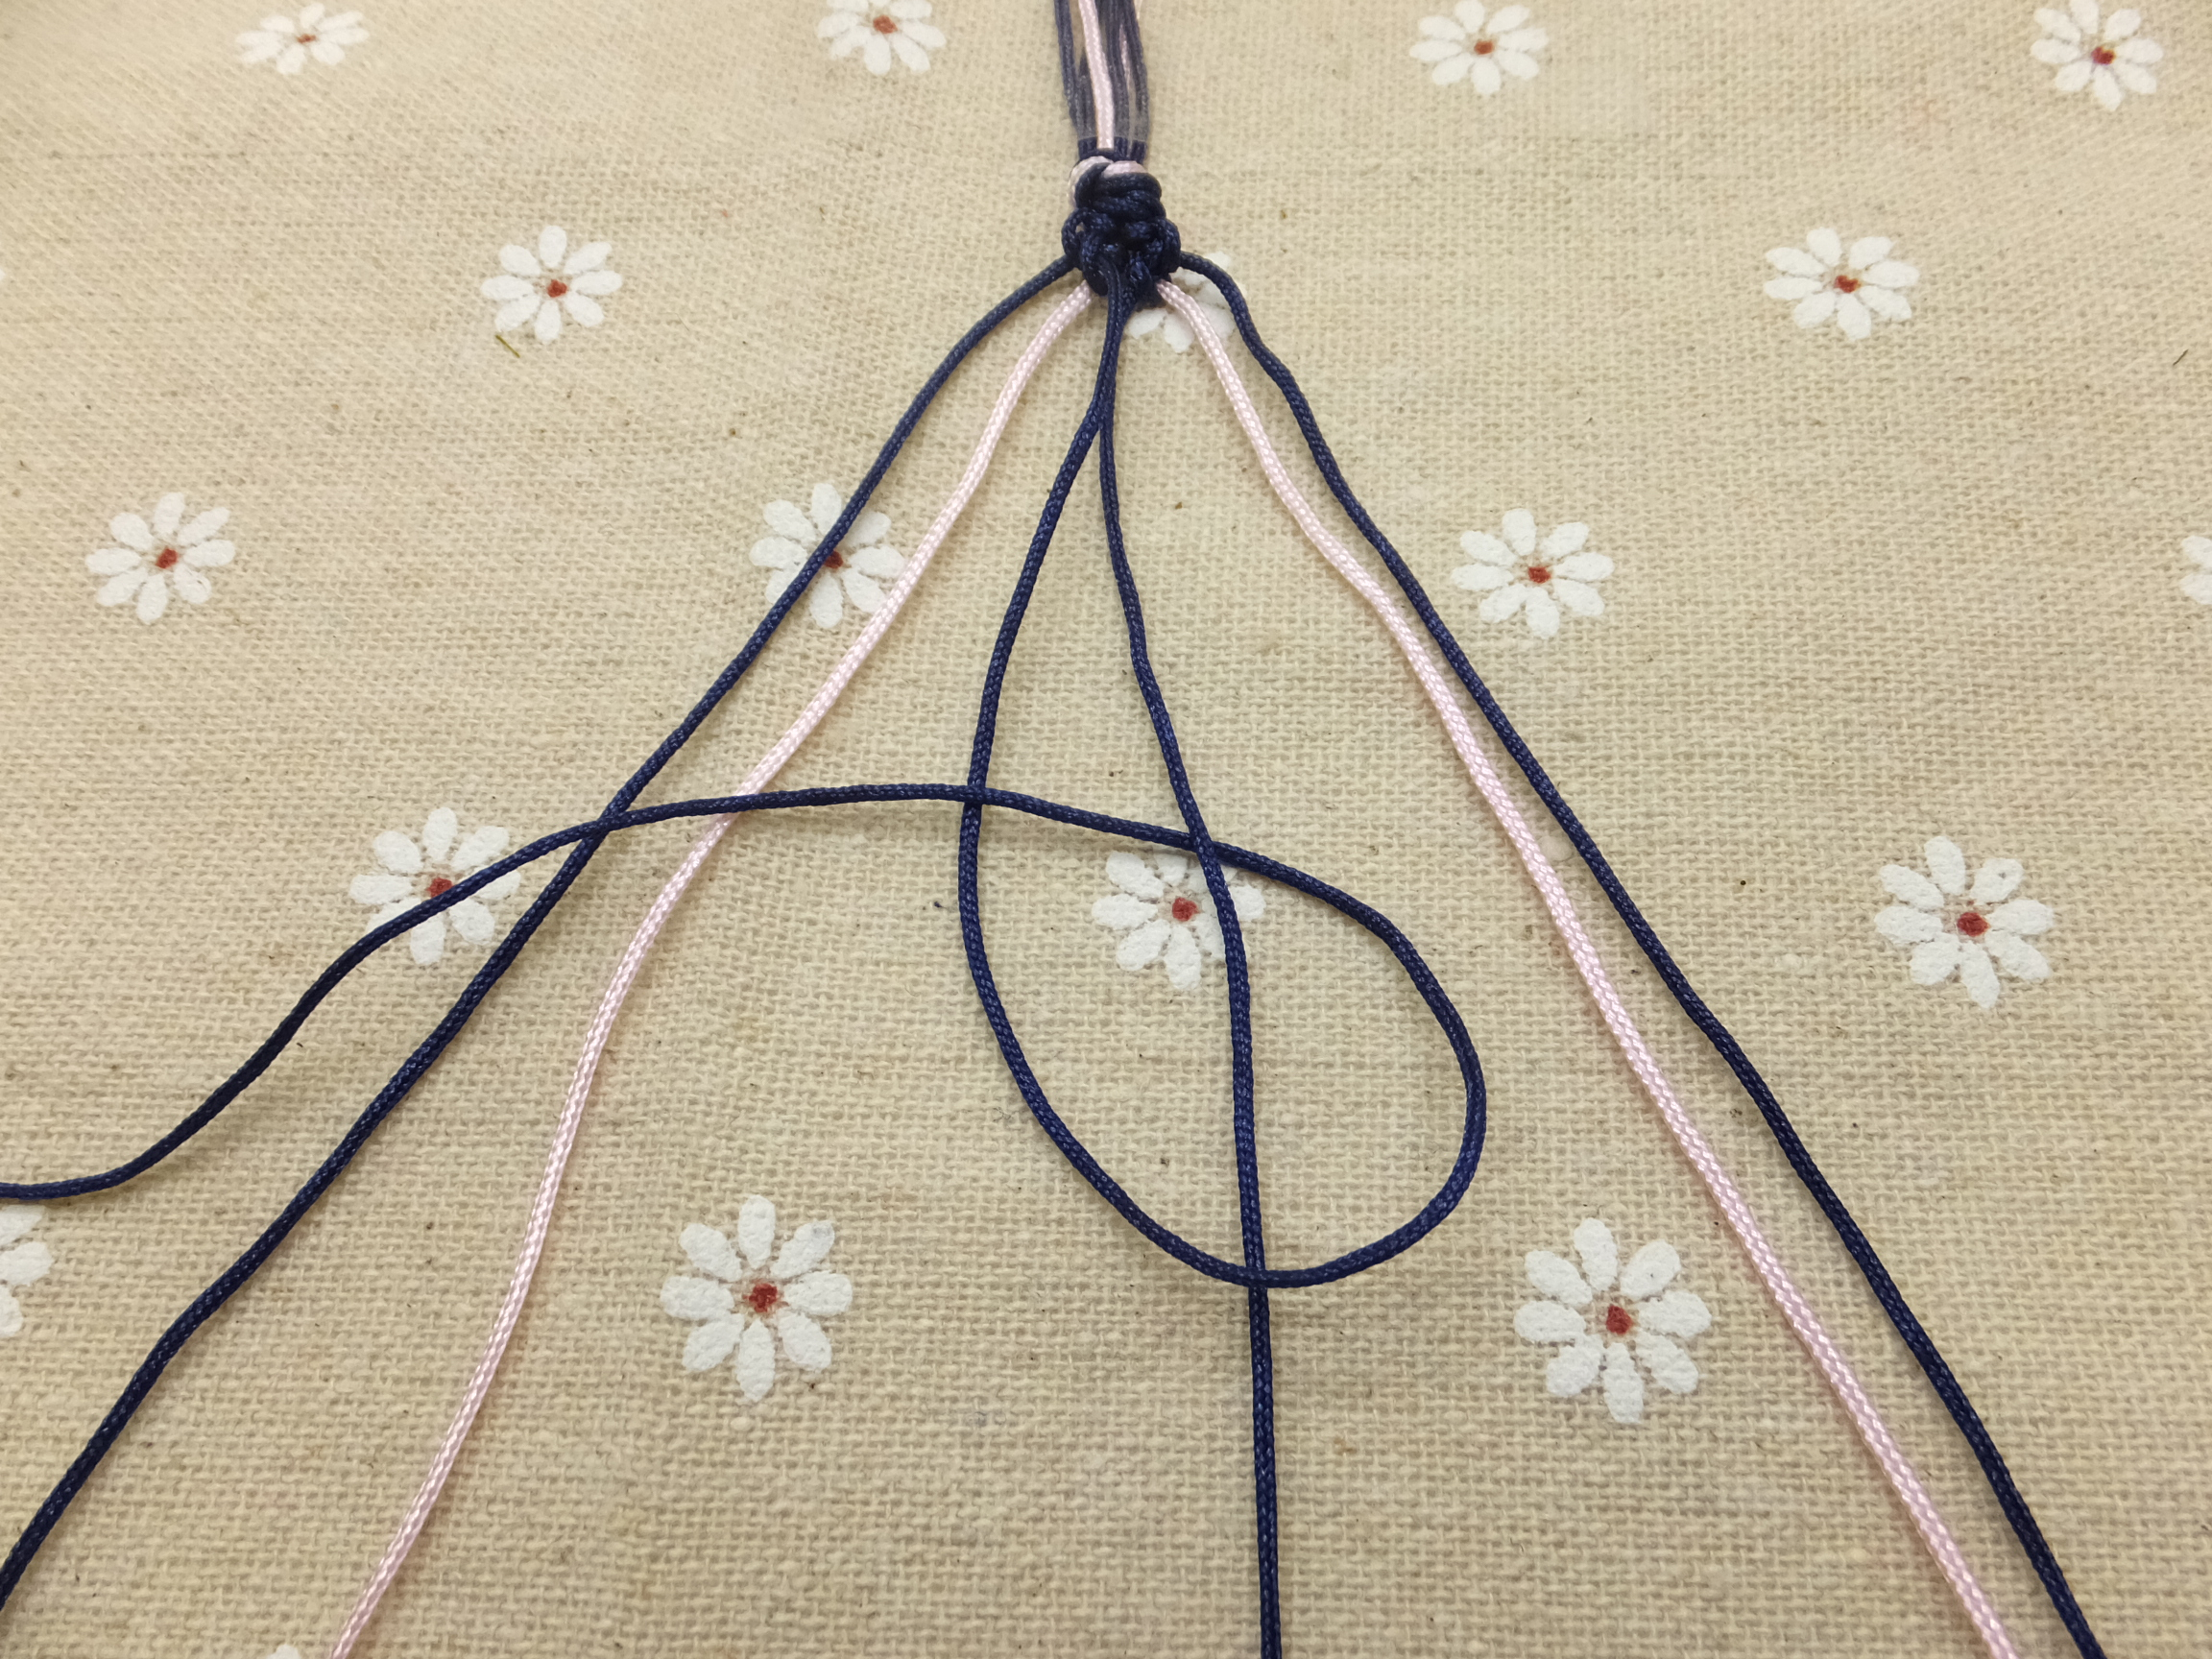 Picture of Continue Knotting Towards the Right Until the Outermost Cord Reaches the Middle.